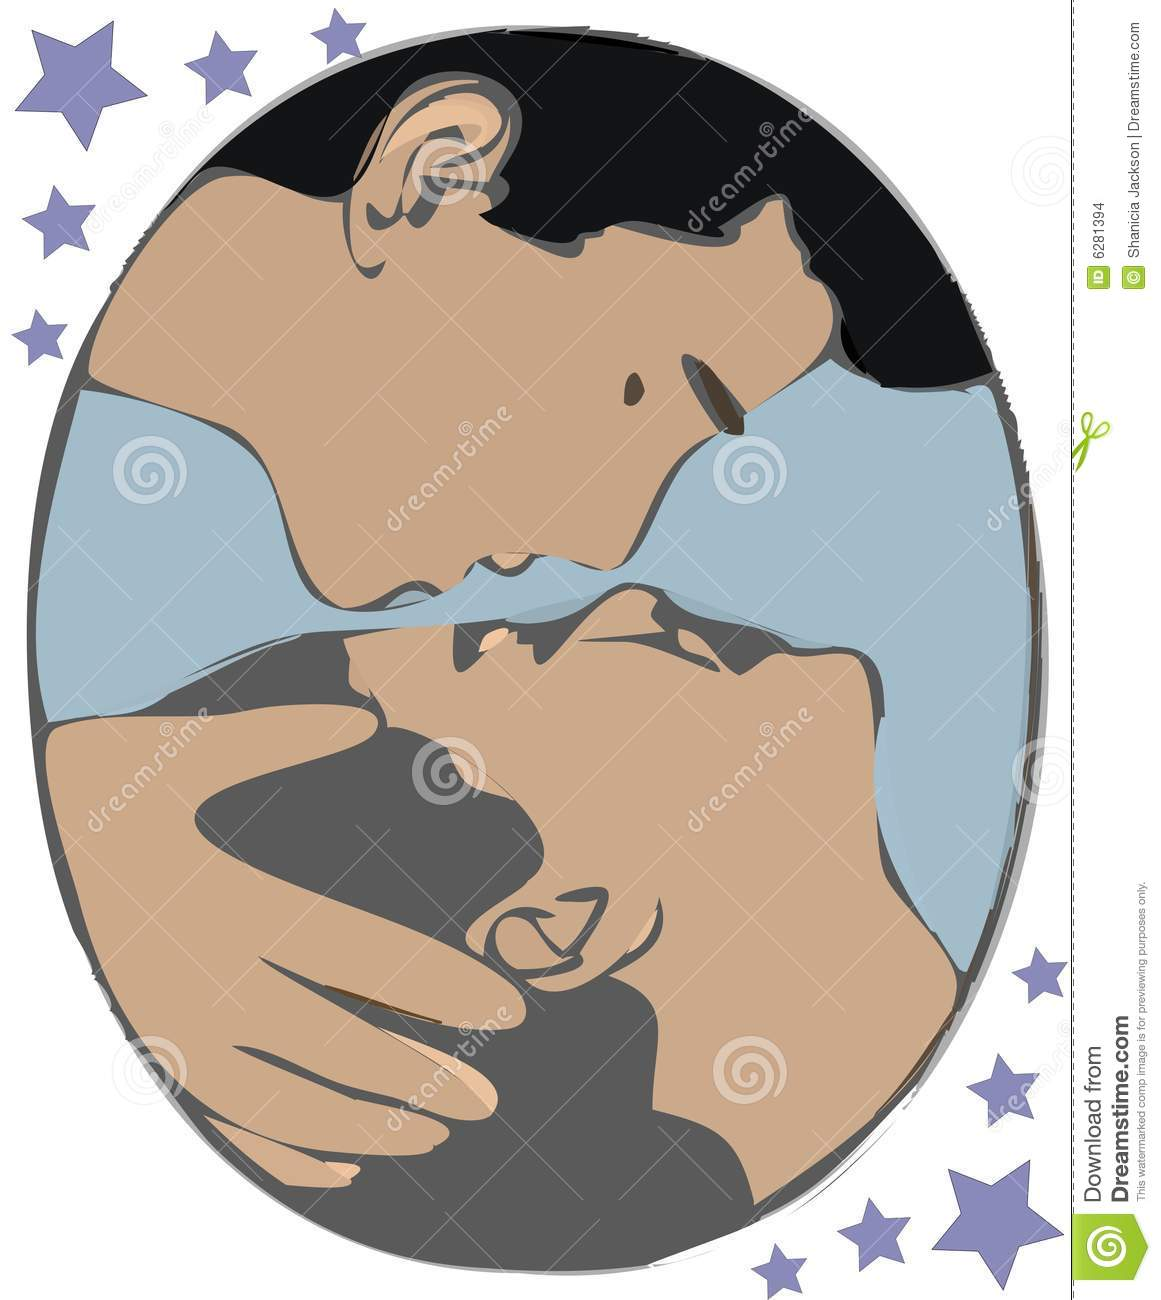 Two people kissing stock illustration. Image of buss ...